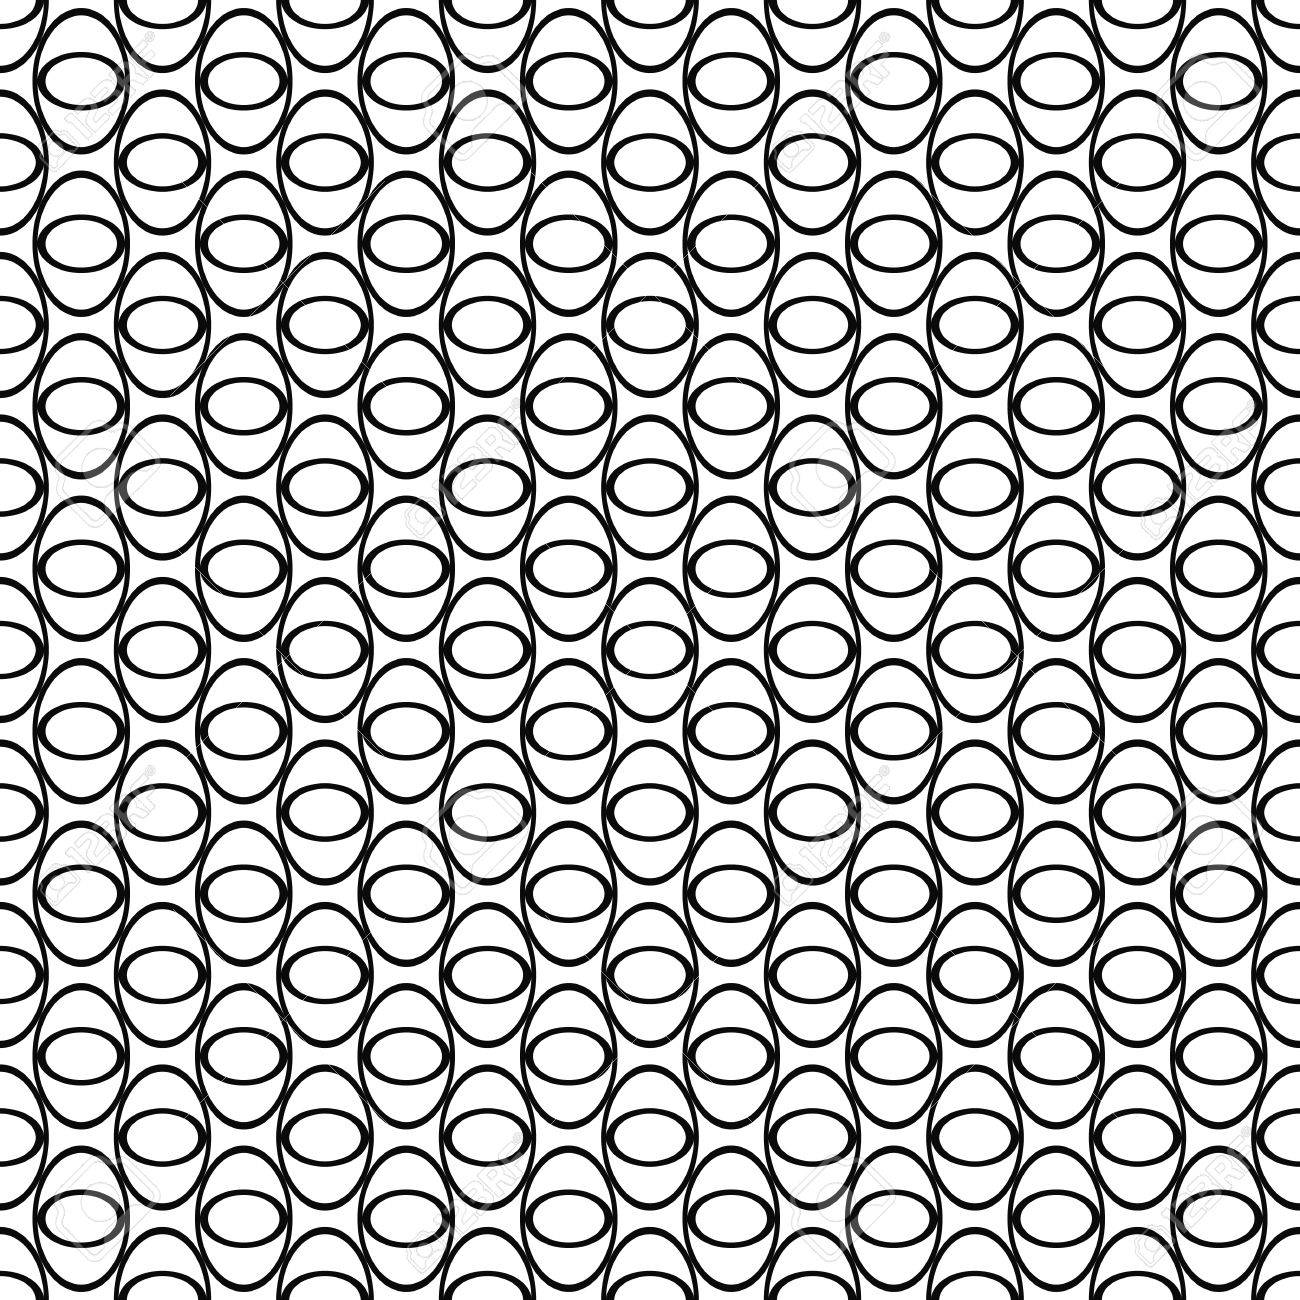 1300x1300 Black And White Seamless Ellipse Grid Pattern Royalty Free